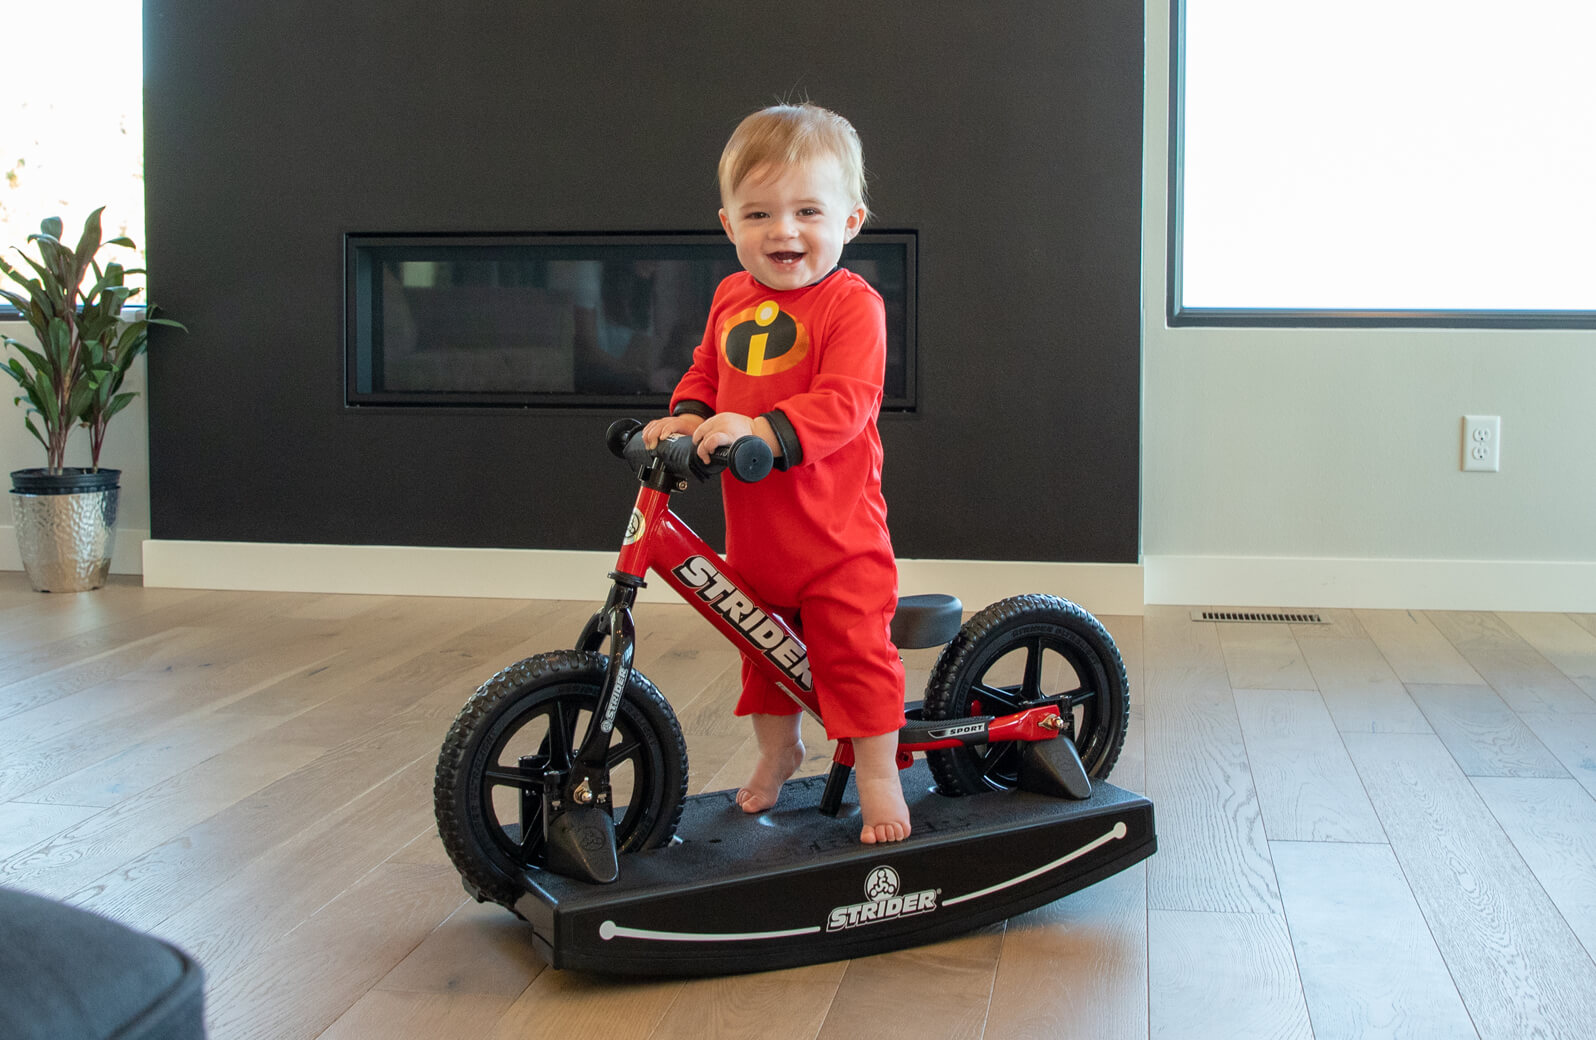 strider balance bikes be excited